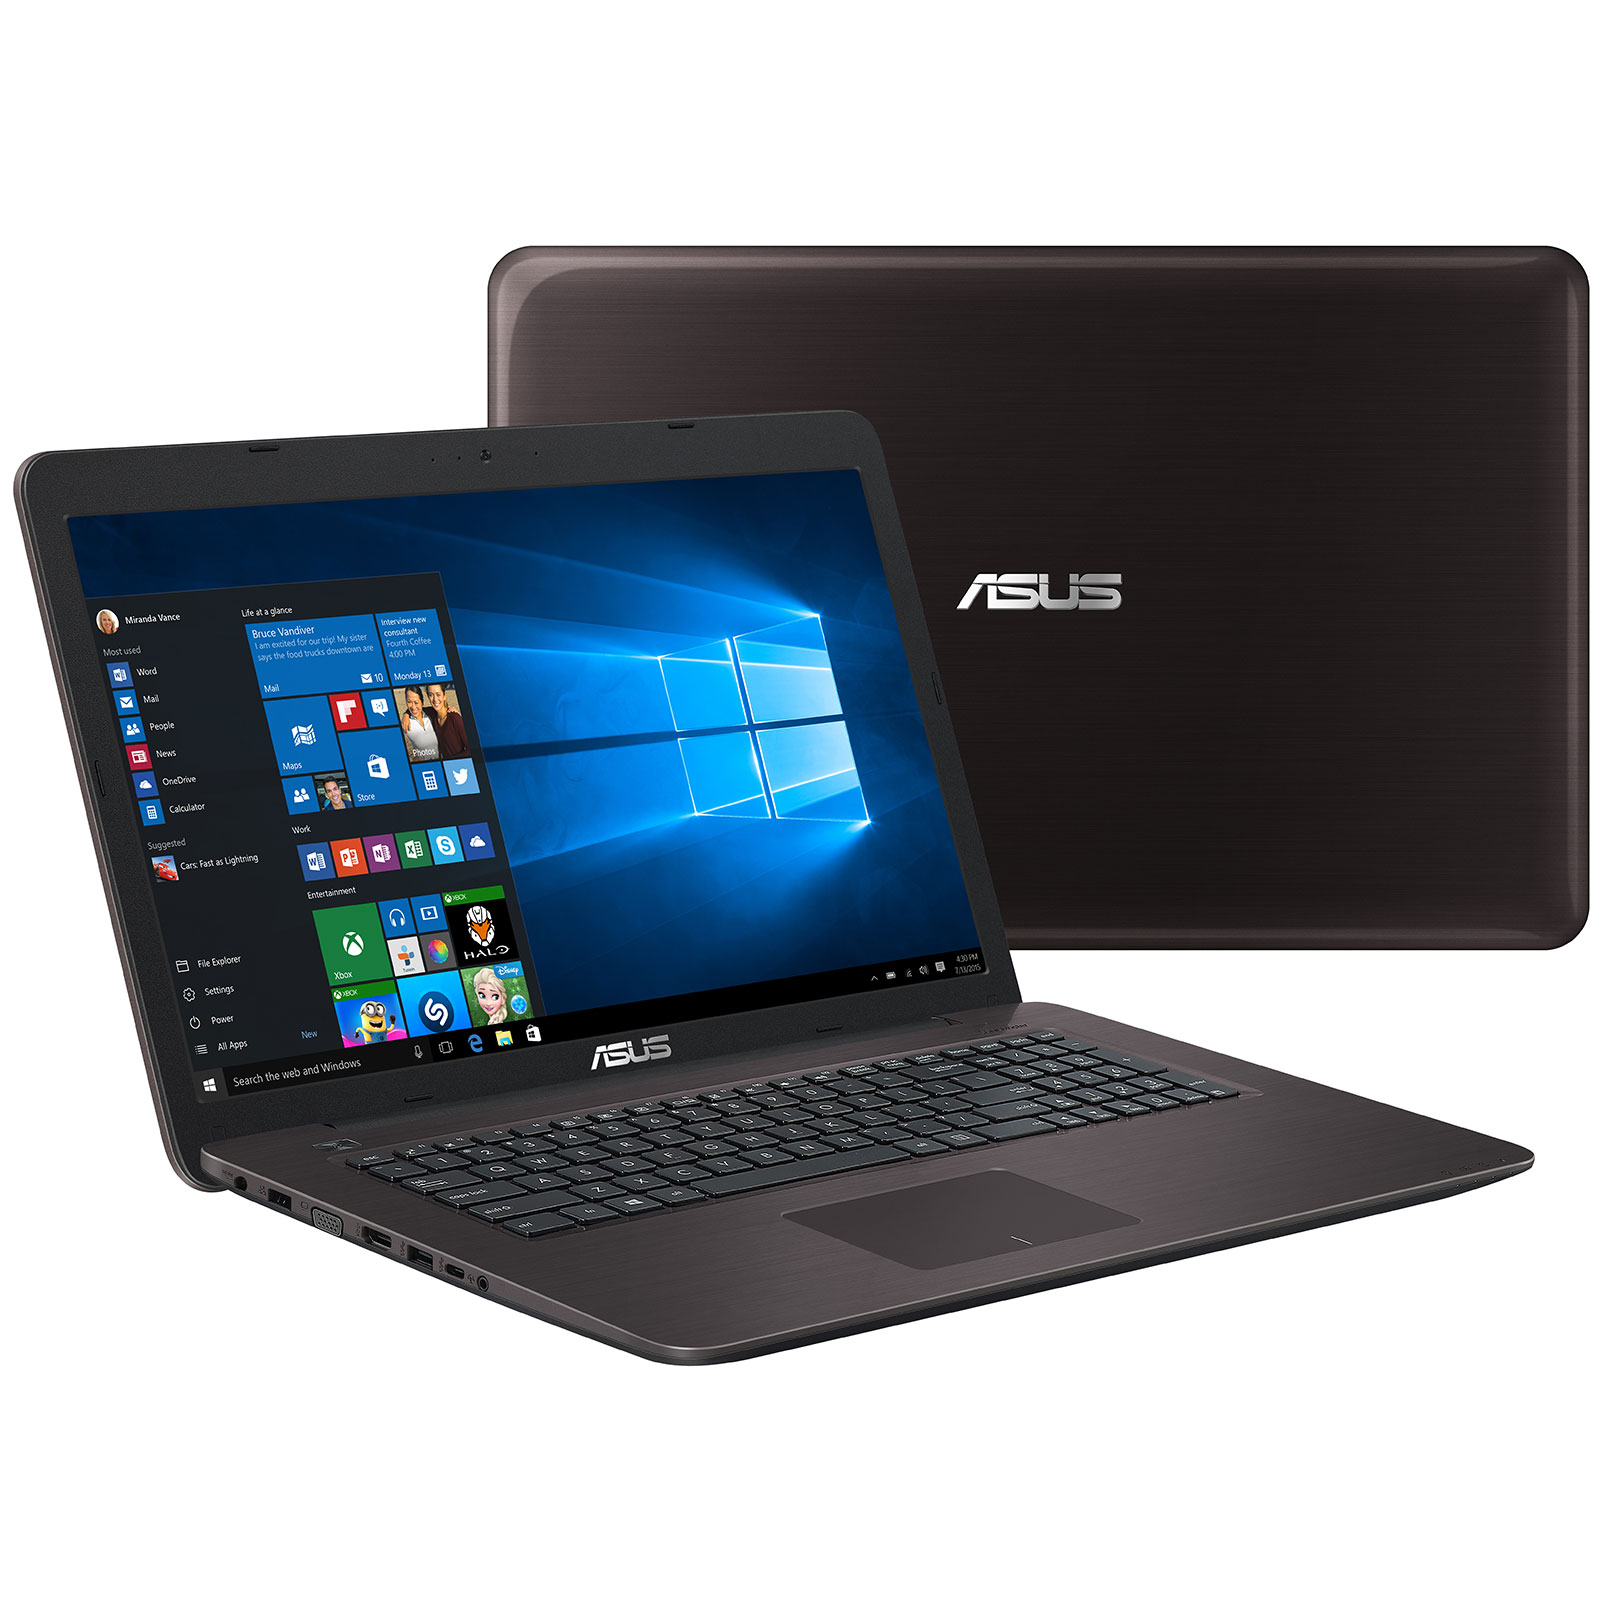 asus k756uq t4373t pc portable asus sur. Black Bedroom Furniture Sets. Home Design Ideas